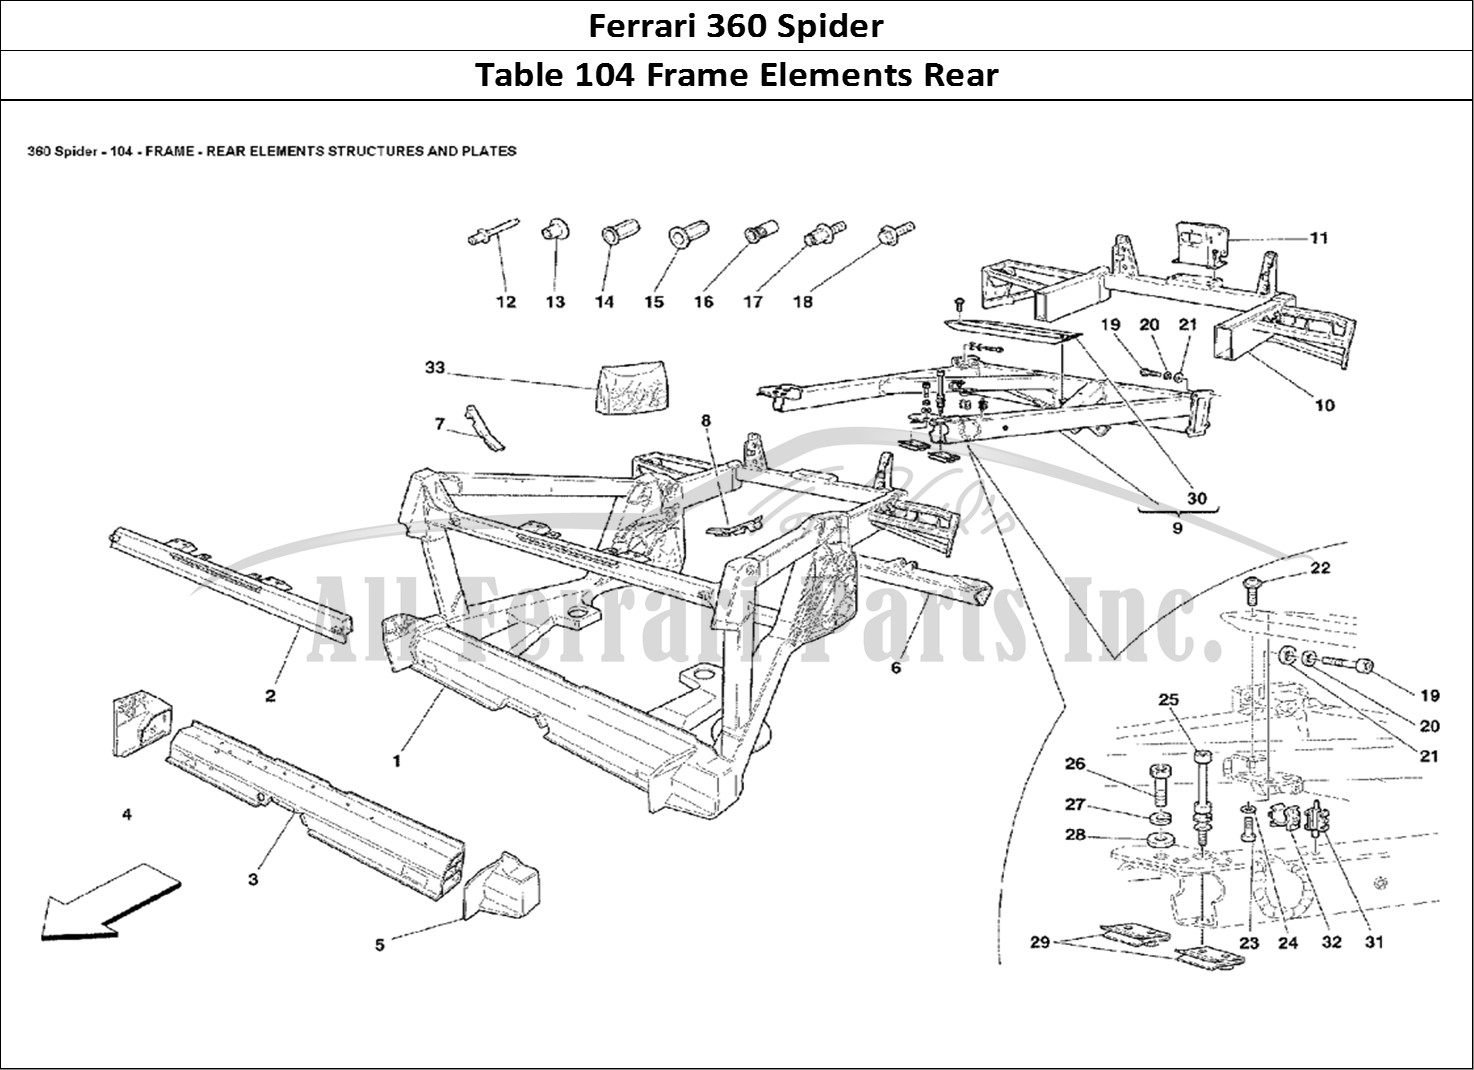 Buy original Ferrari 360 Spider 104 Frame Elements Rear